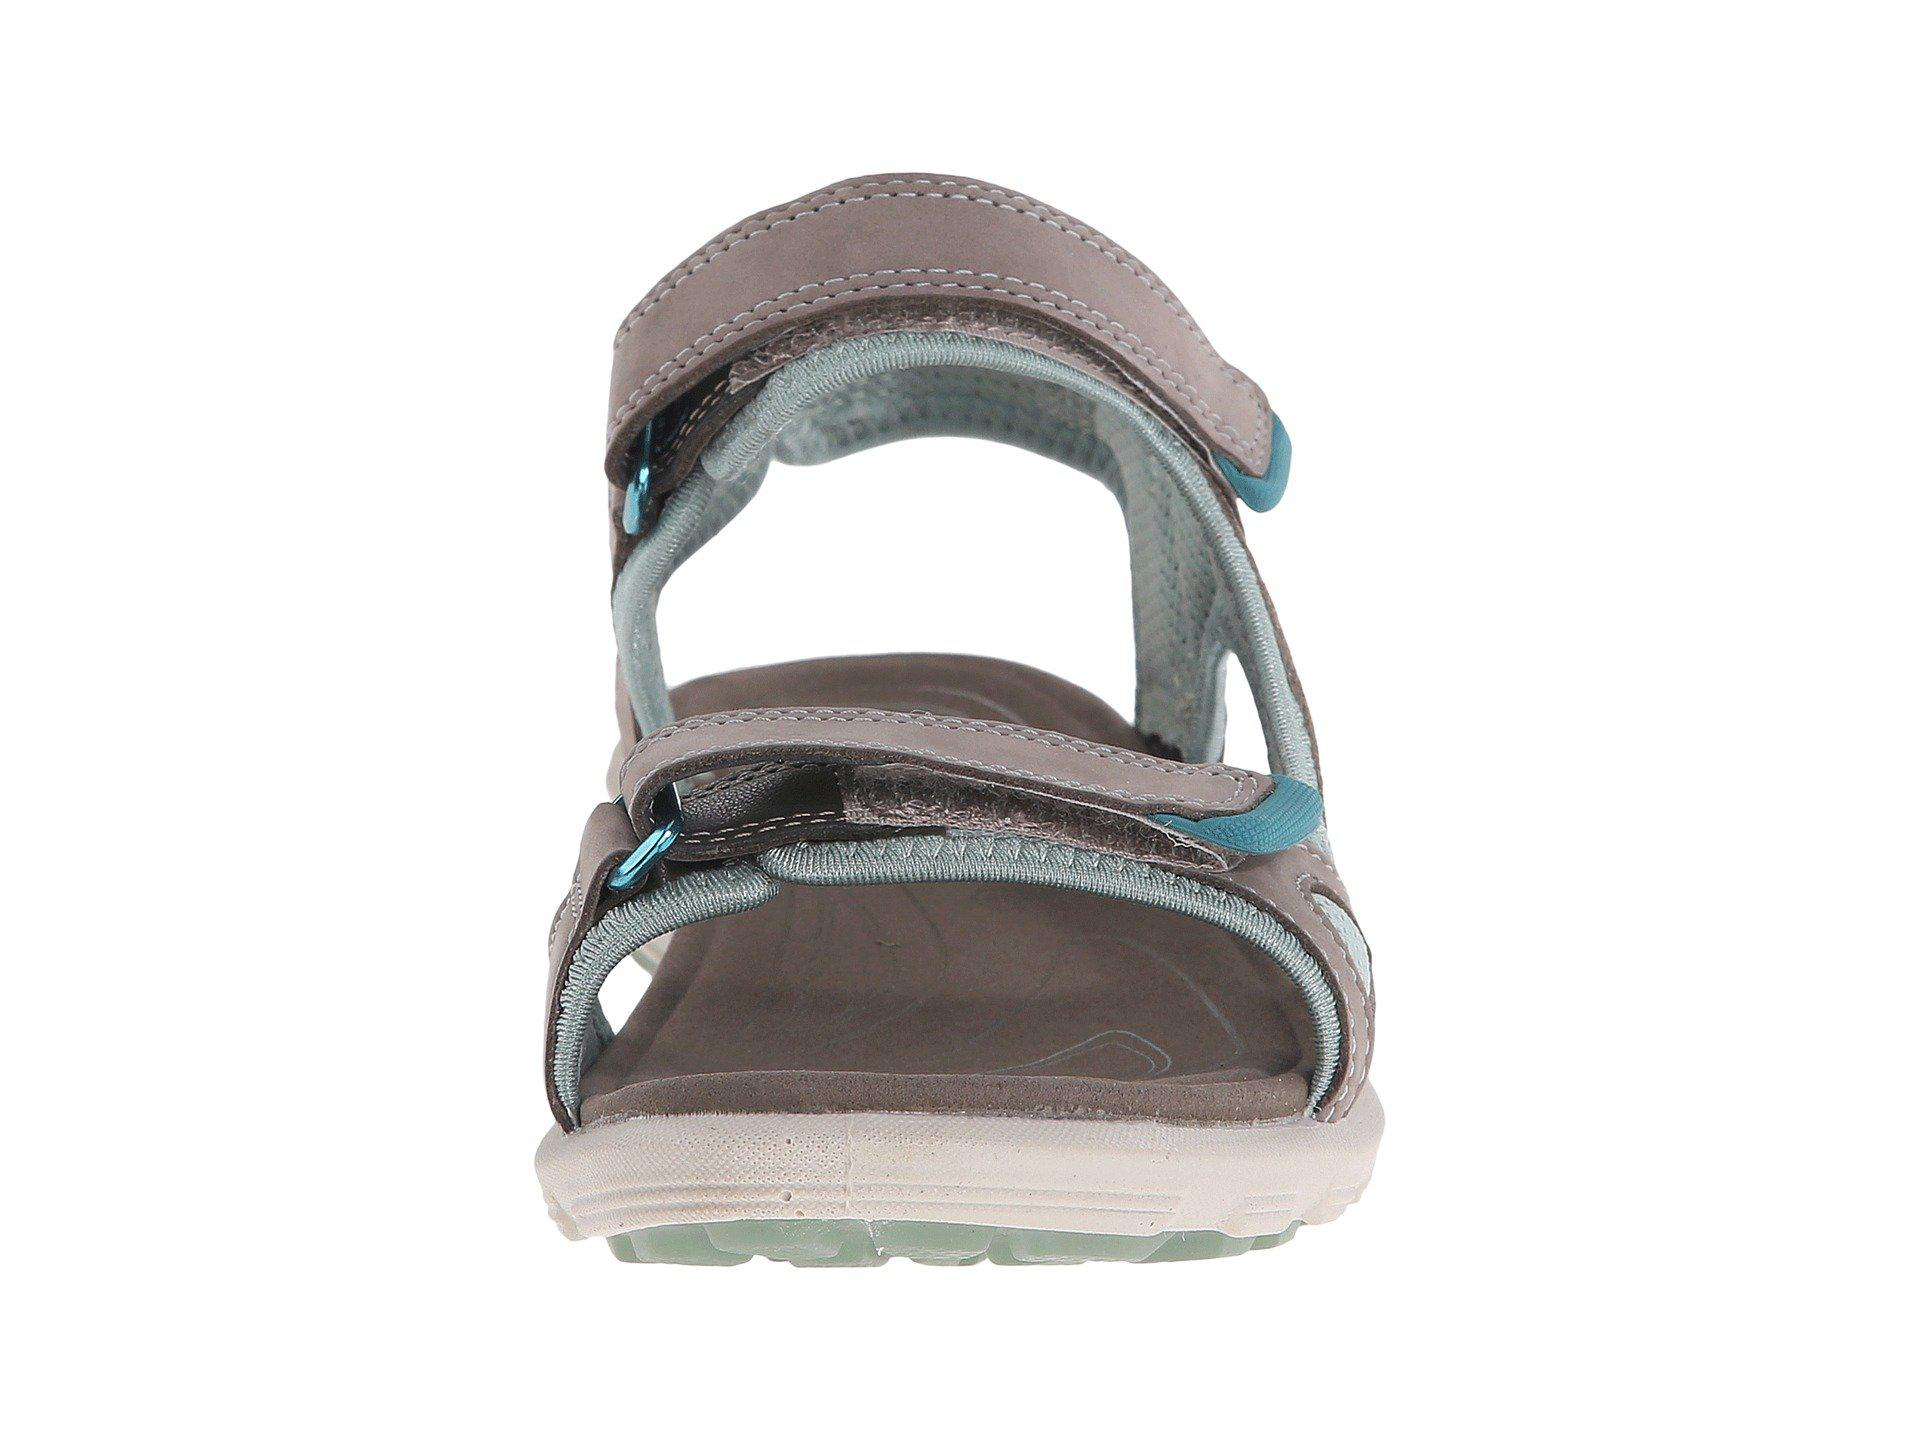 760f529312c6 Lyst - Ecco Cruise Catalina Sandal in Gray